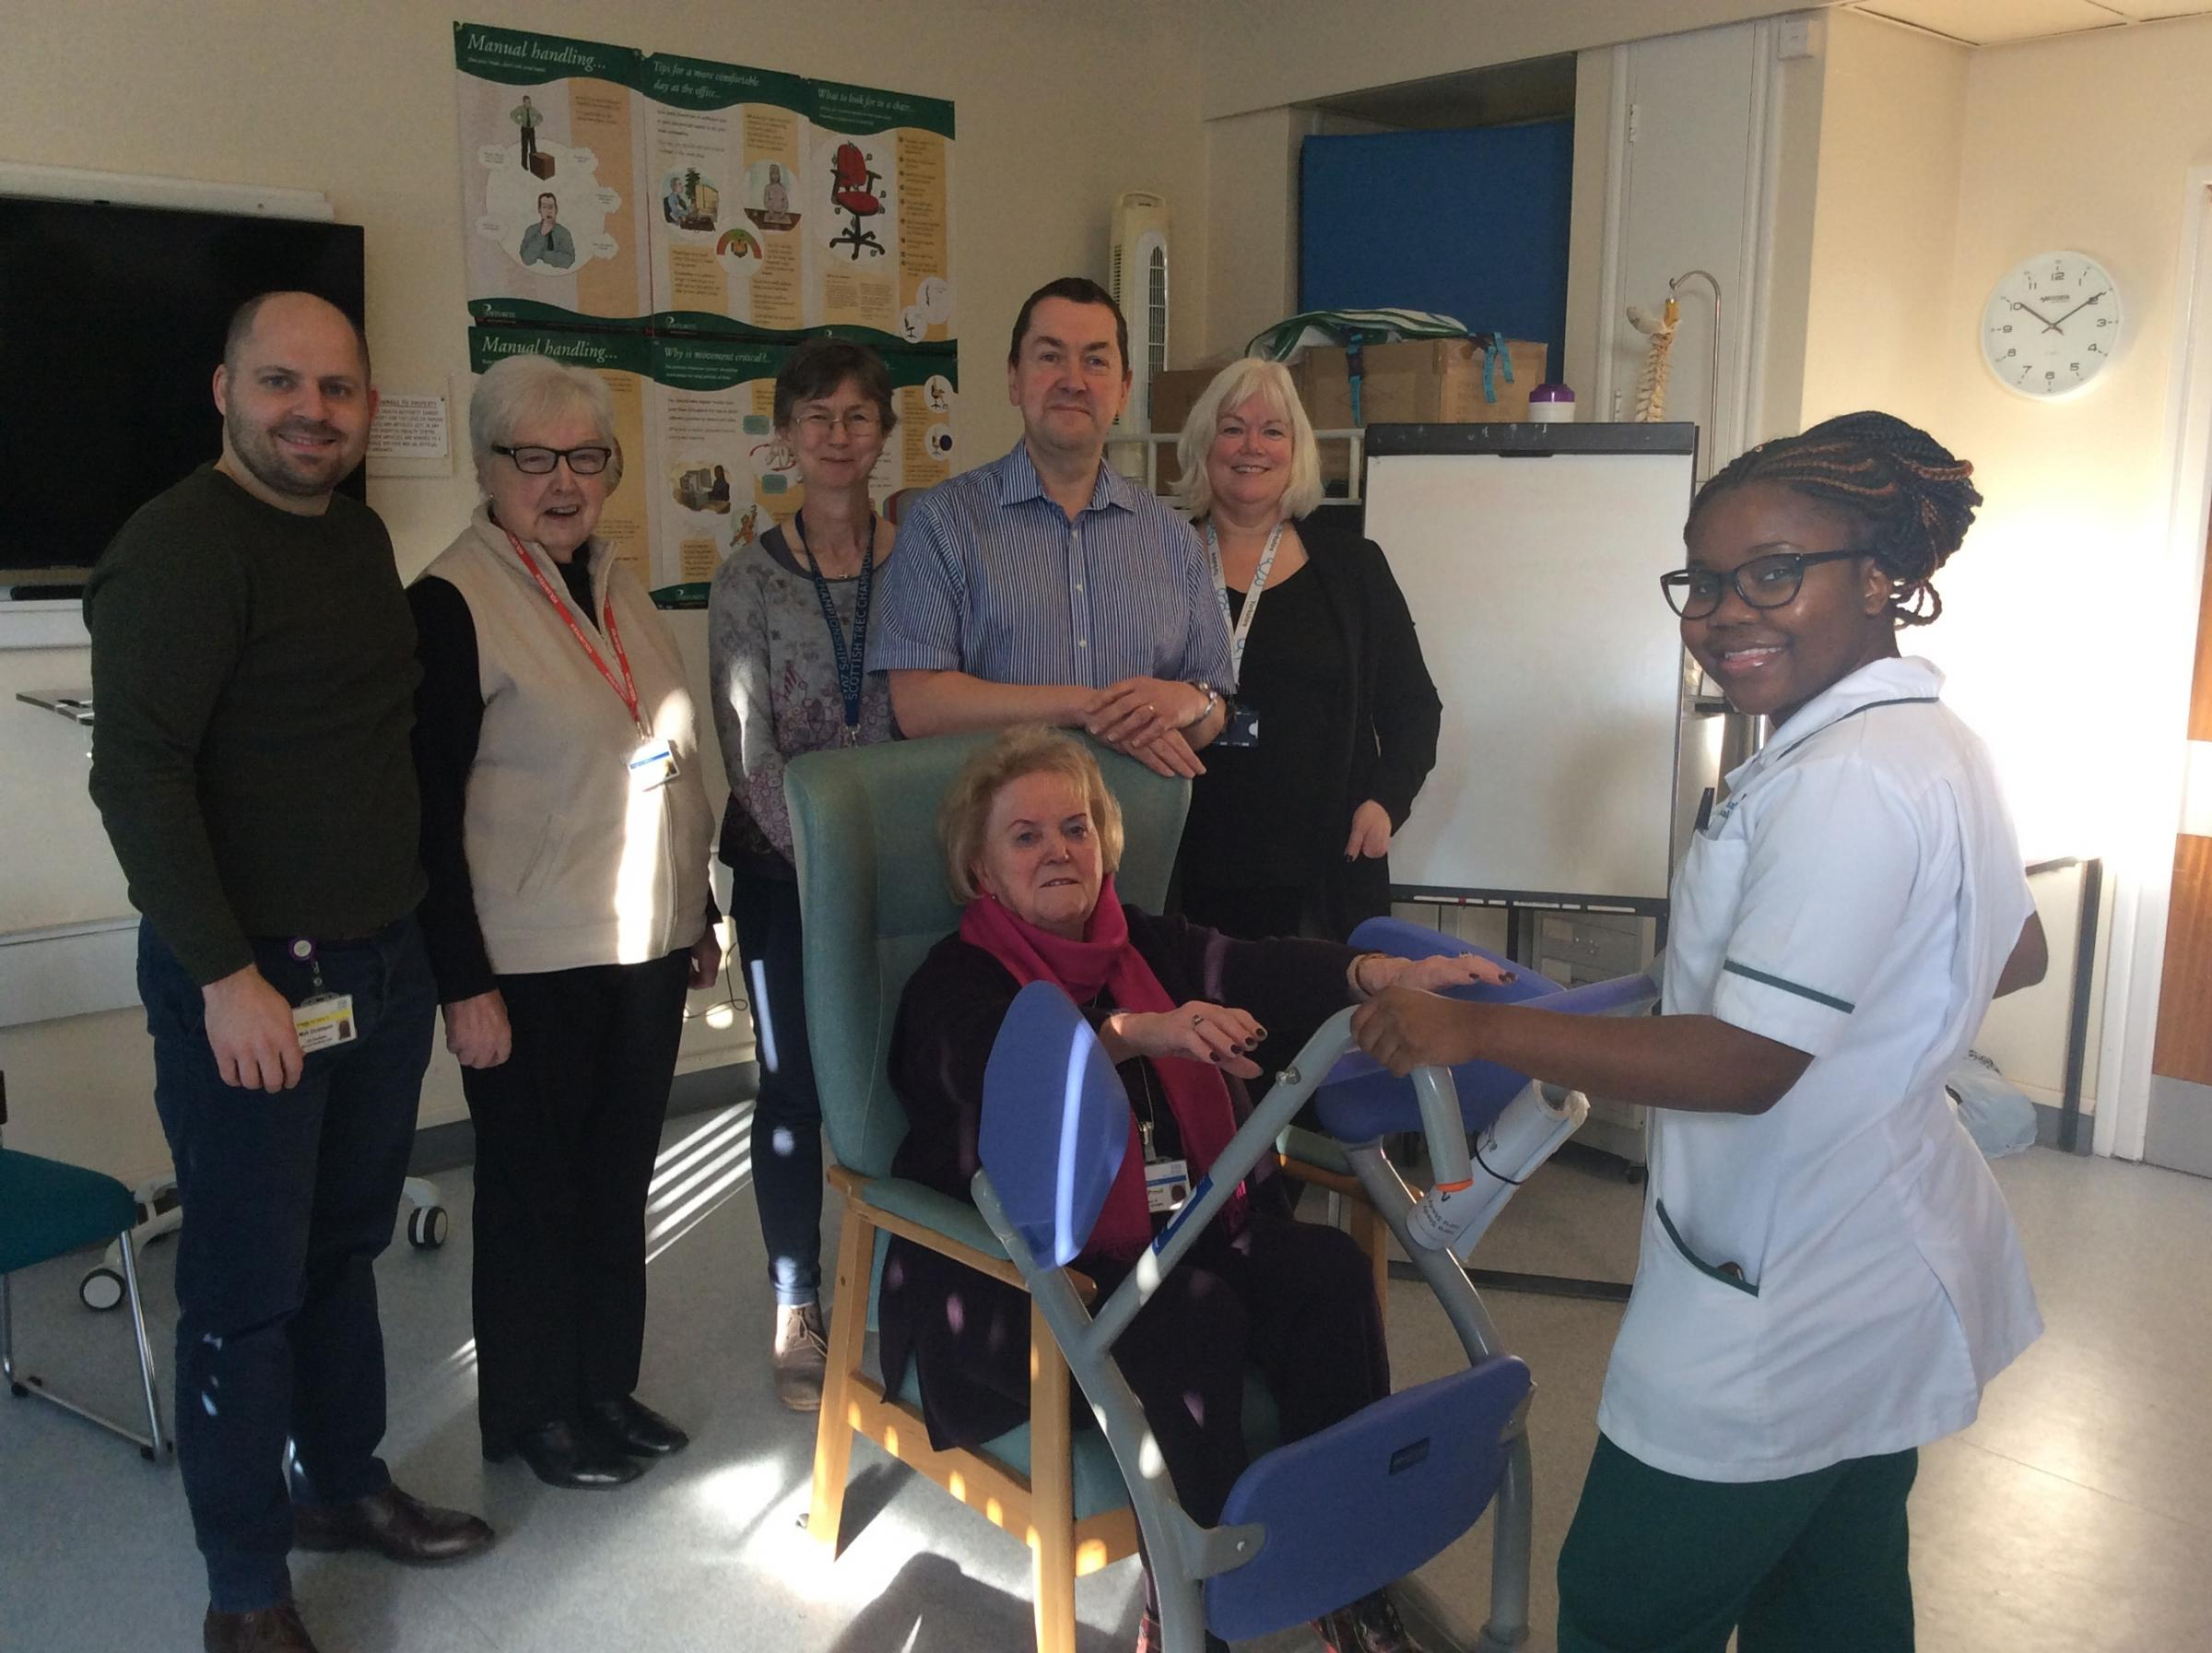 Friends of Airedale president Eileen Proud tries out one of the stands. With her are, from left, Matt Dickinson, learning and development facilitator at the trust; Betty Perry, secretary of the Friends; Dr Meg Crossley, consultant in emergency medicine; M